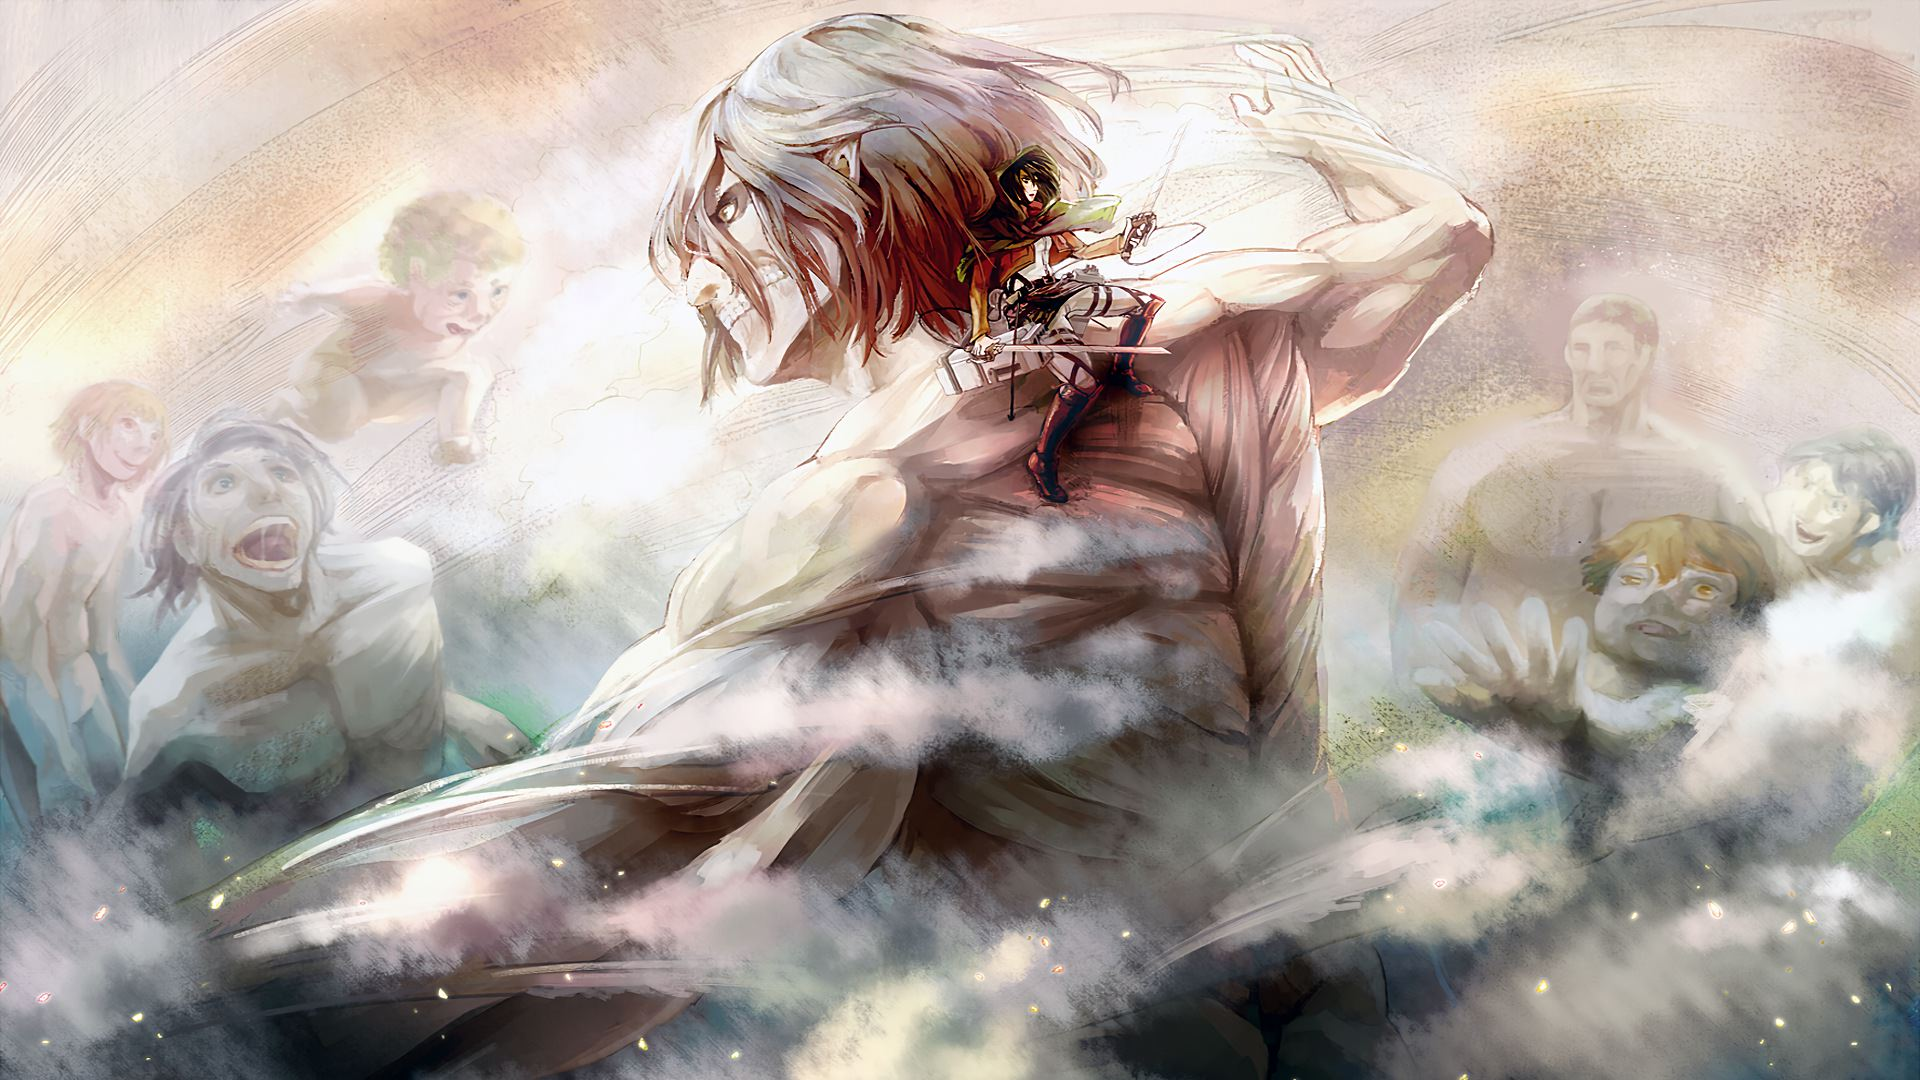 Attack On Titan Anime Wallpapers Top Free Attack On Titan Anime Backgrounds Wallpaperaccess